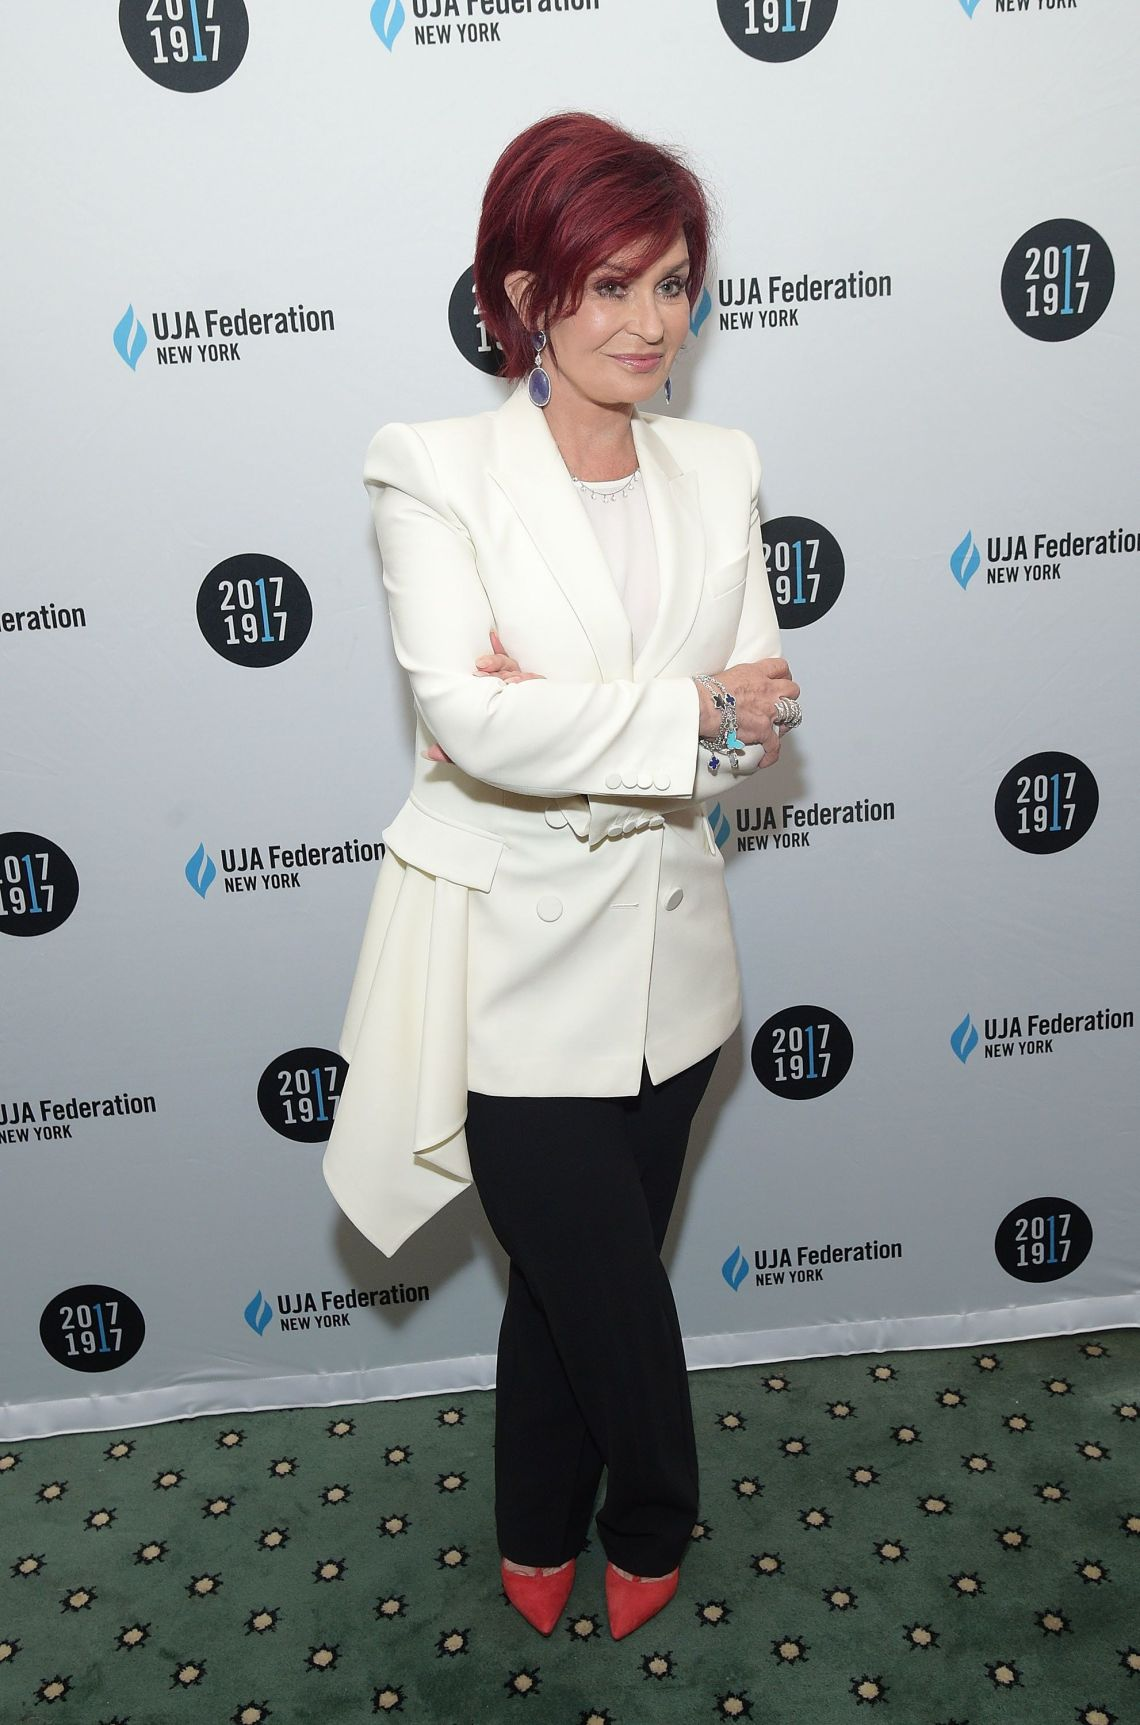 Sharon Osbourne Reveals How She Ruined Her Niece's Hen Party With Stripper Stunt